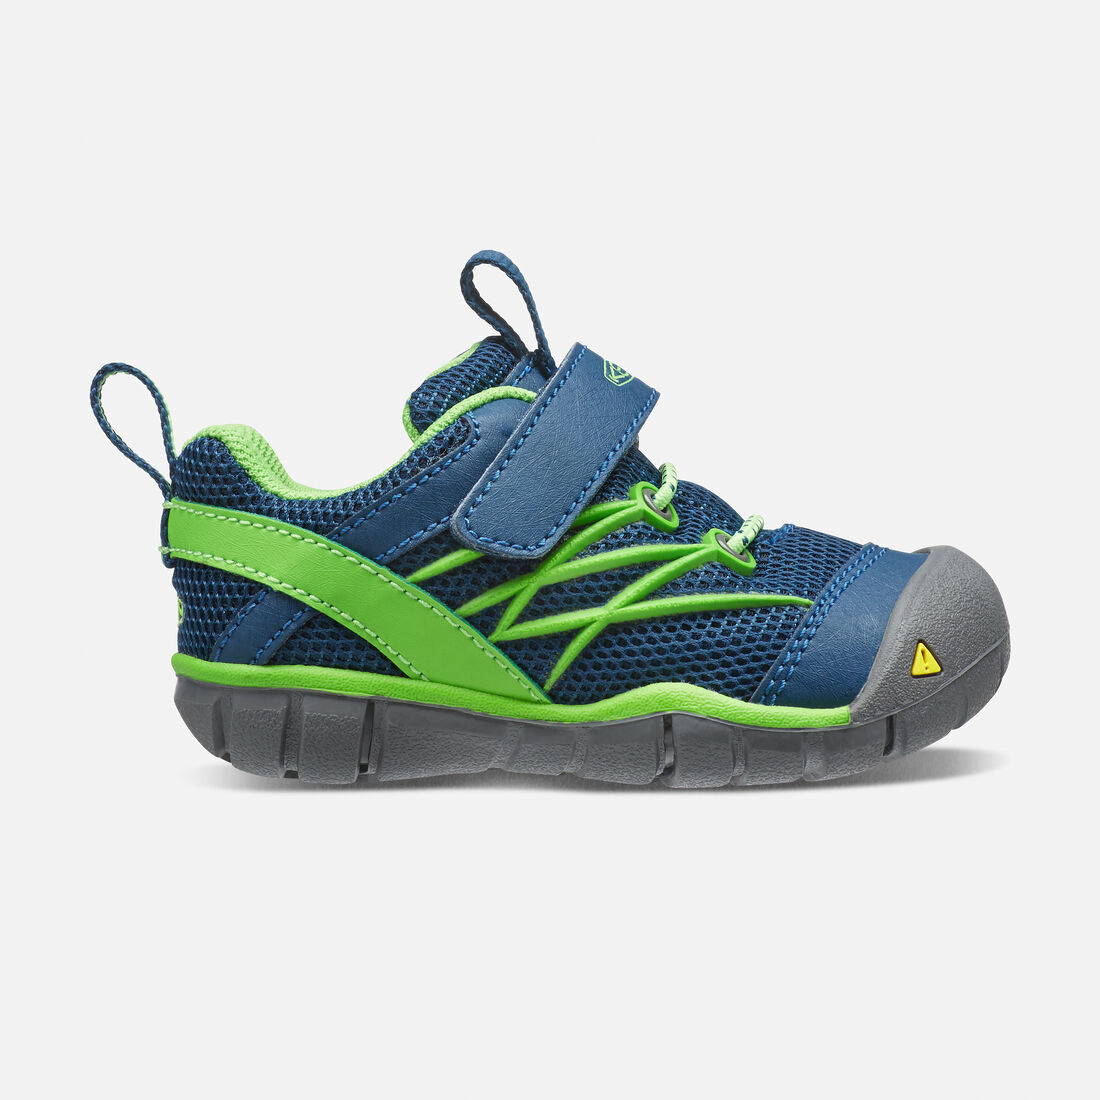 49f4ef30795 Toddlers' Chandler CNX Shoes - Quick-Dry | KEEN Footwear